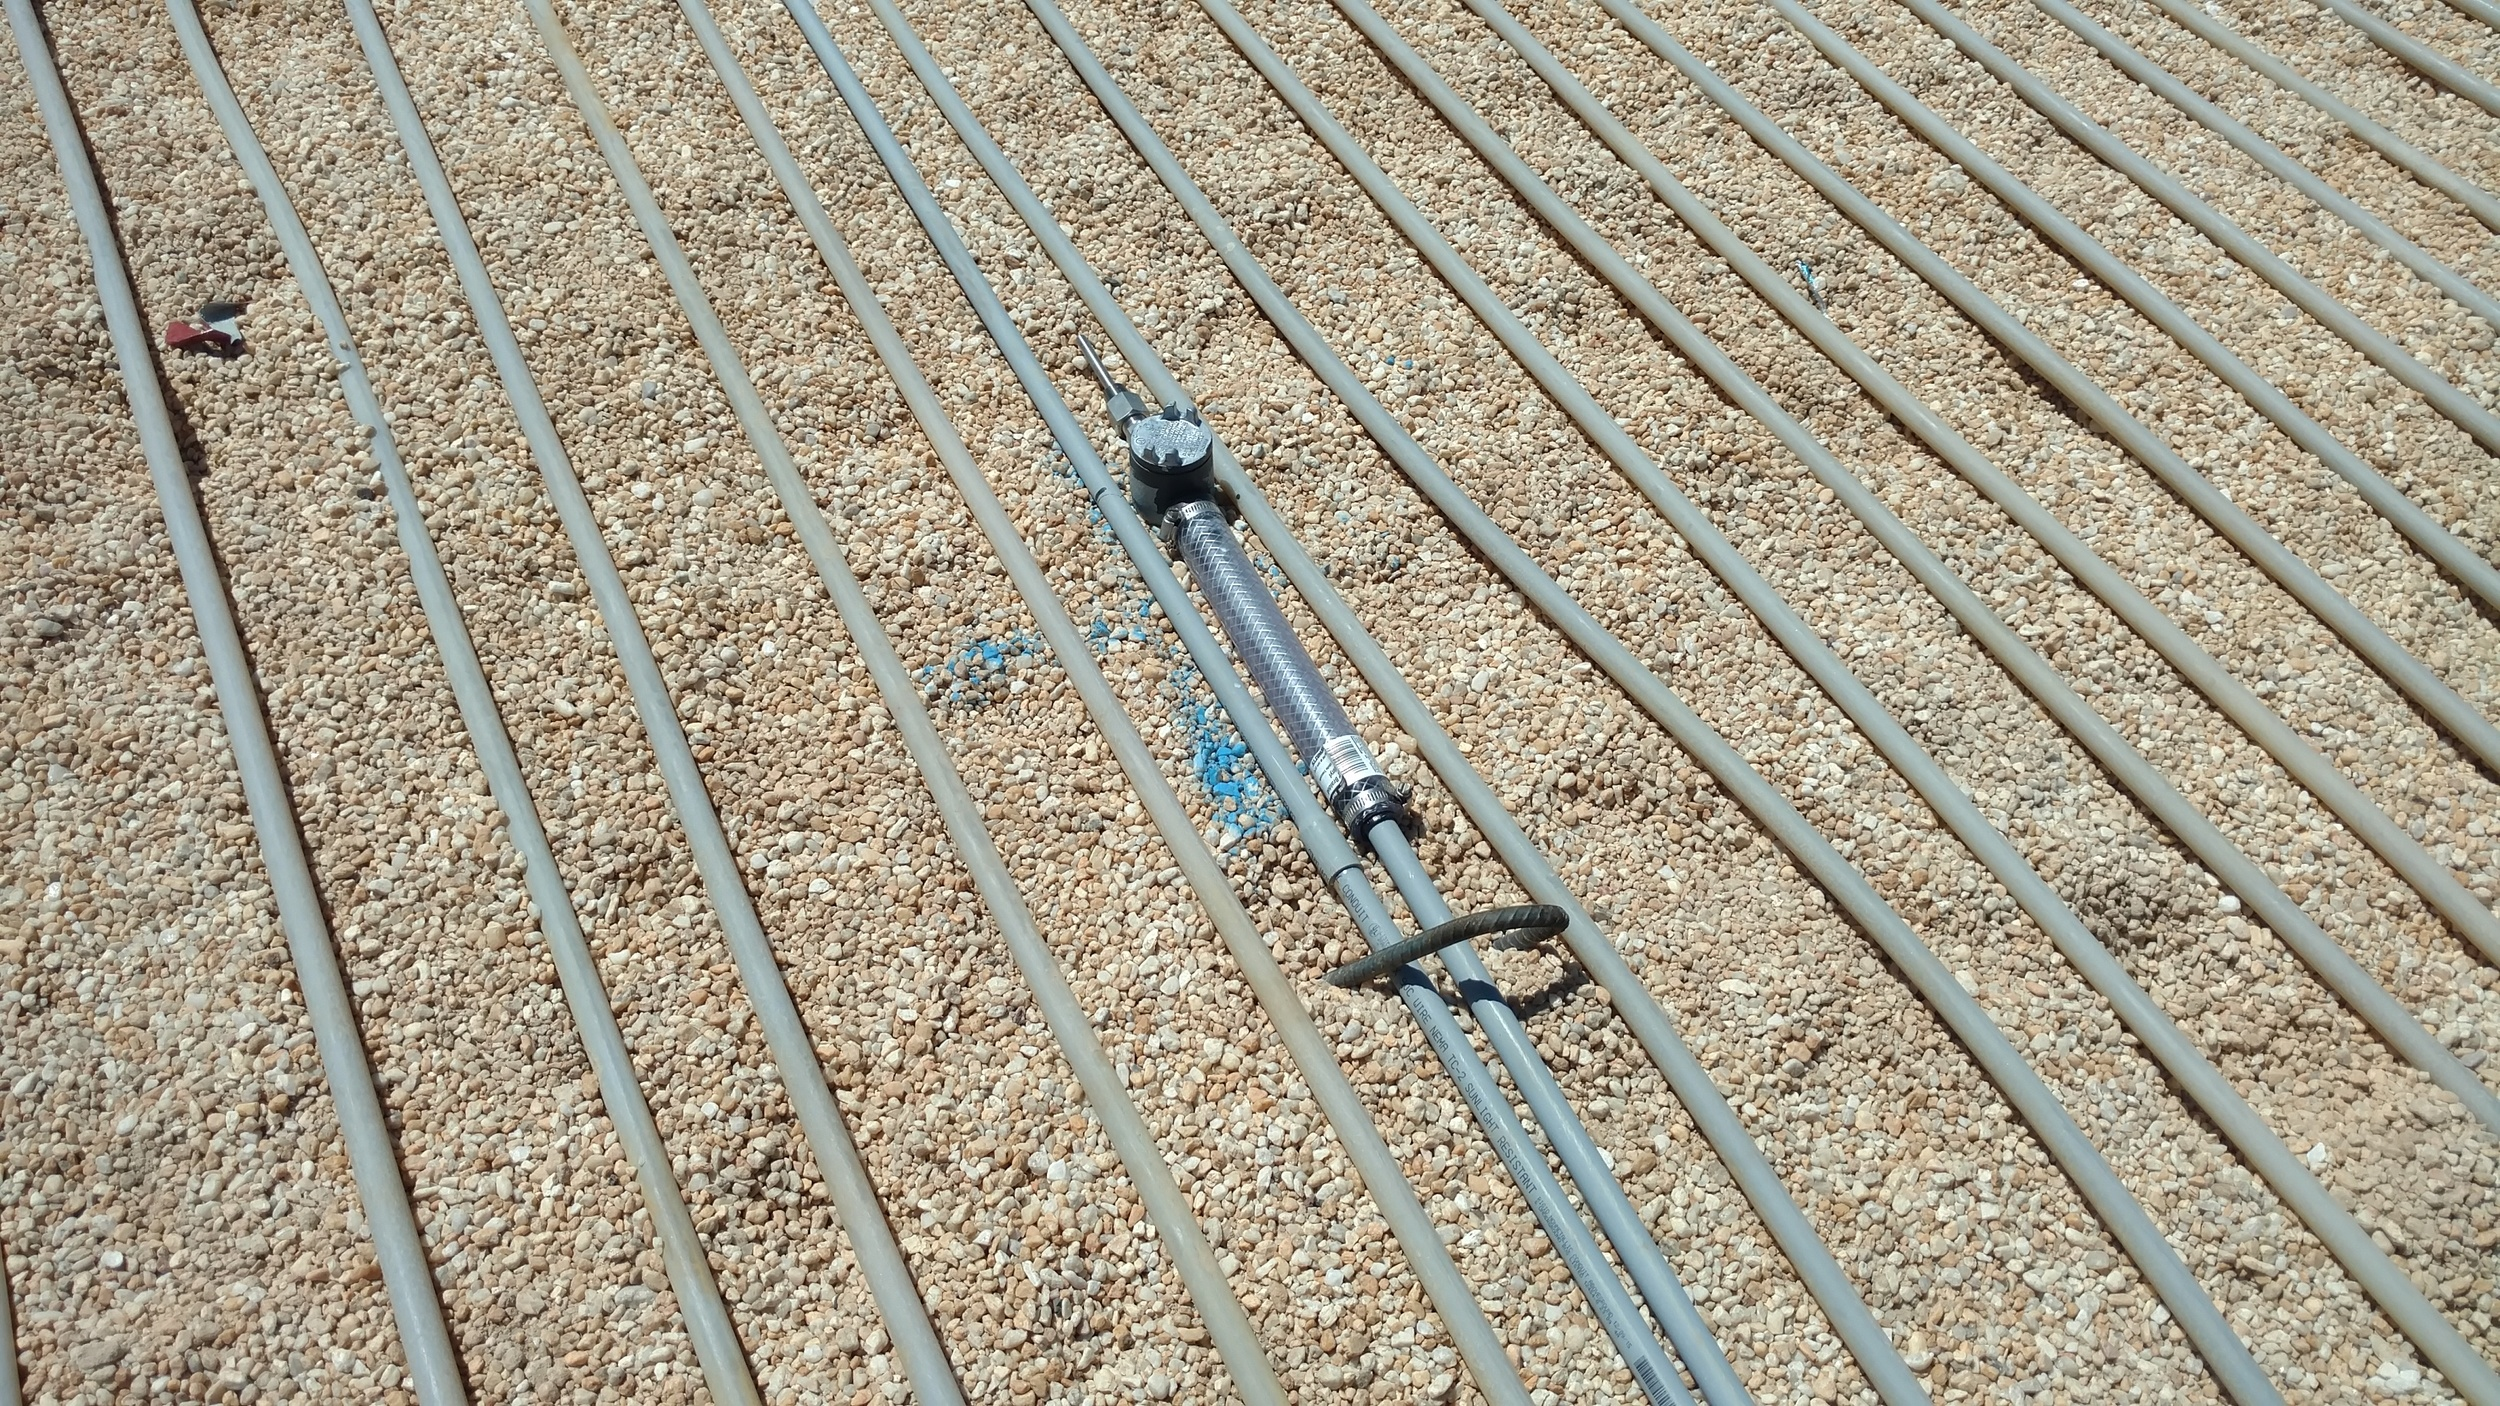 Hydronic rootzone warming system - soil temperature probe